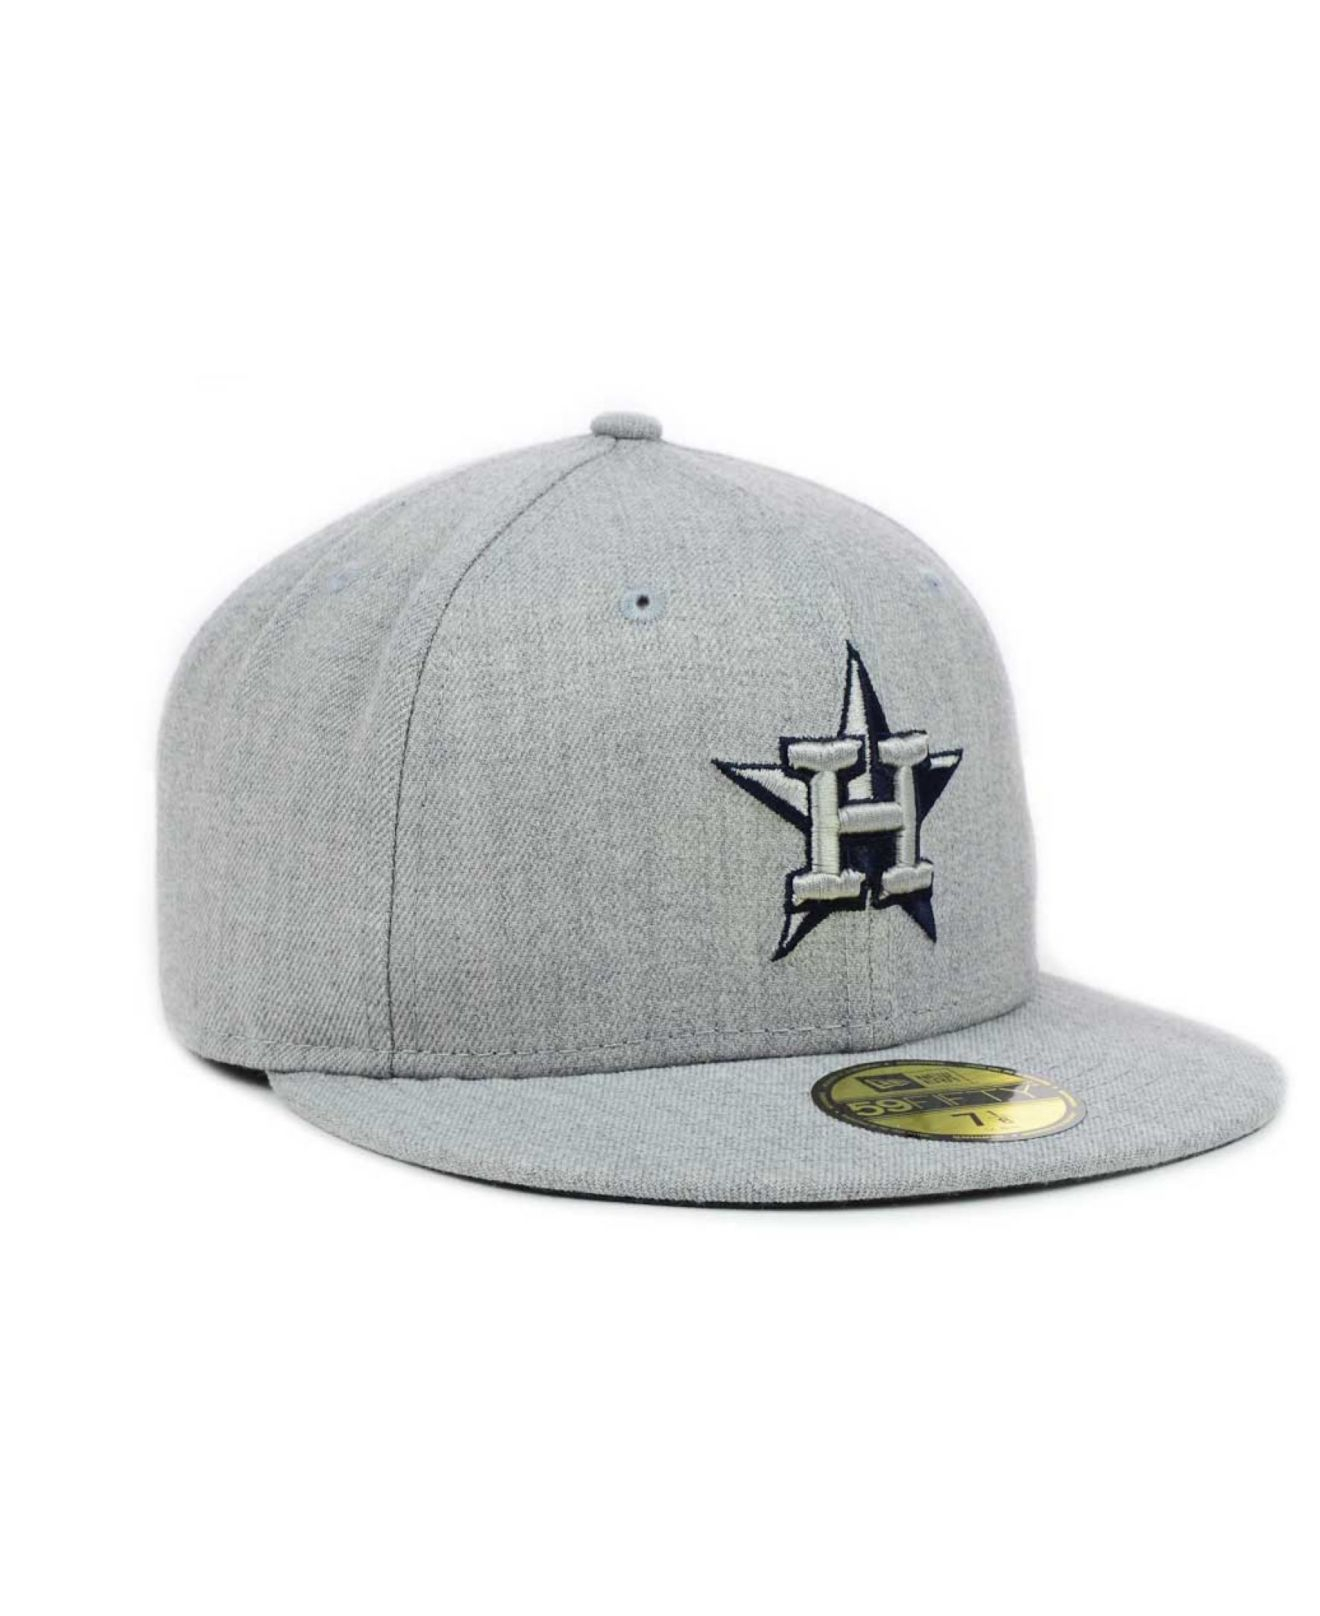 sports shoes 12e20 f2cd6 ... good lyst ktz houston astros mlb heather basic 59fifty cap in gray for  men 01993 d6e48